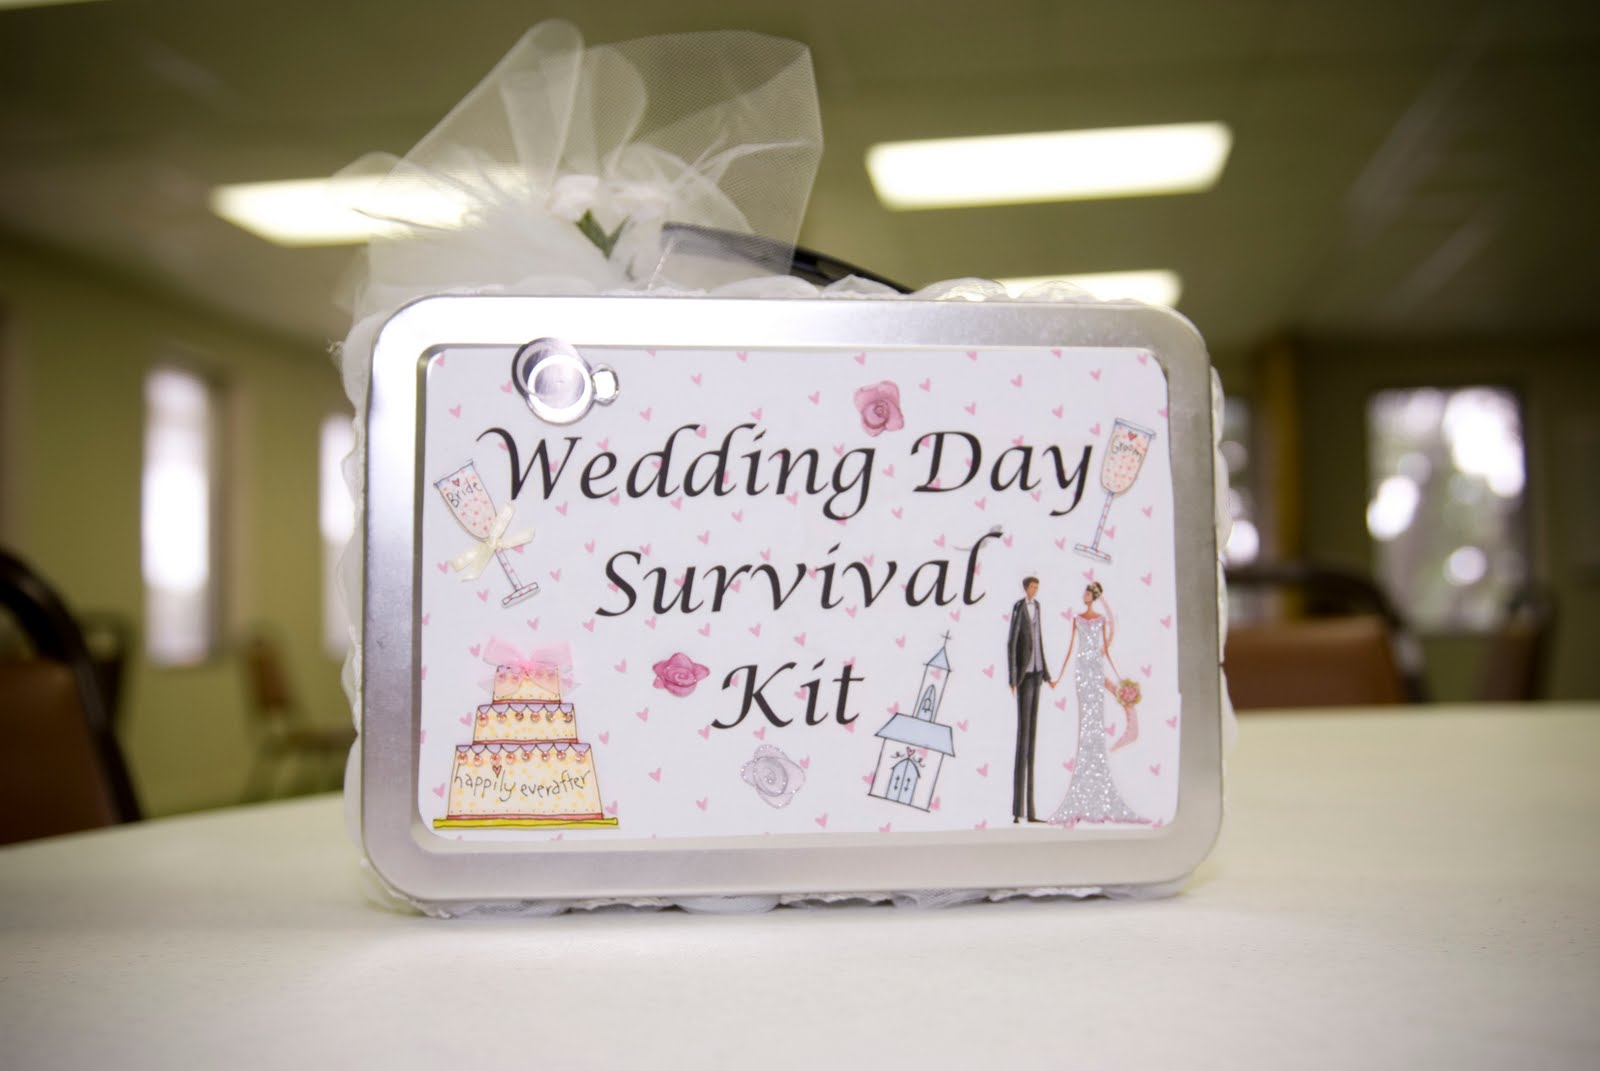 7 Wedding Gift : Full of Craft: Wedding Week: Wedding Day Survival Kit